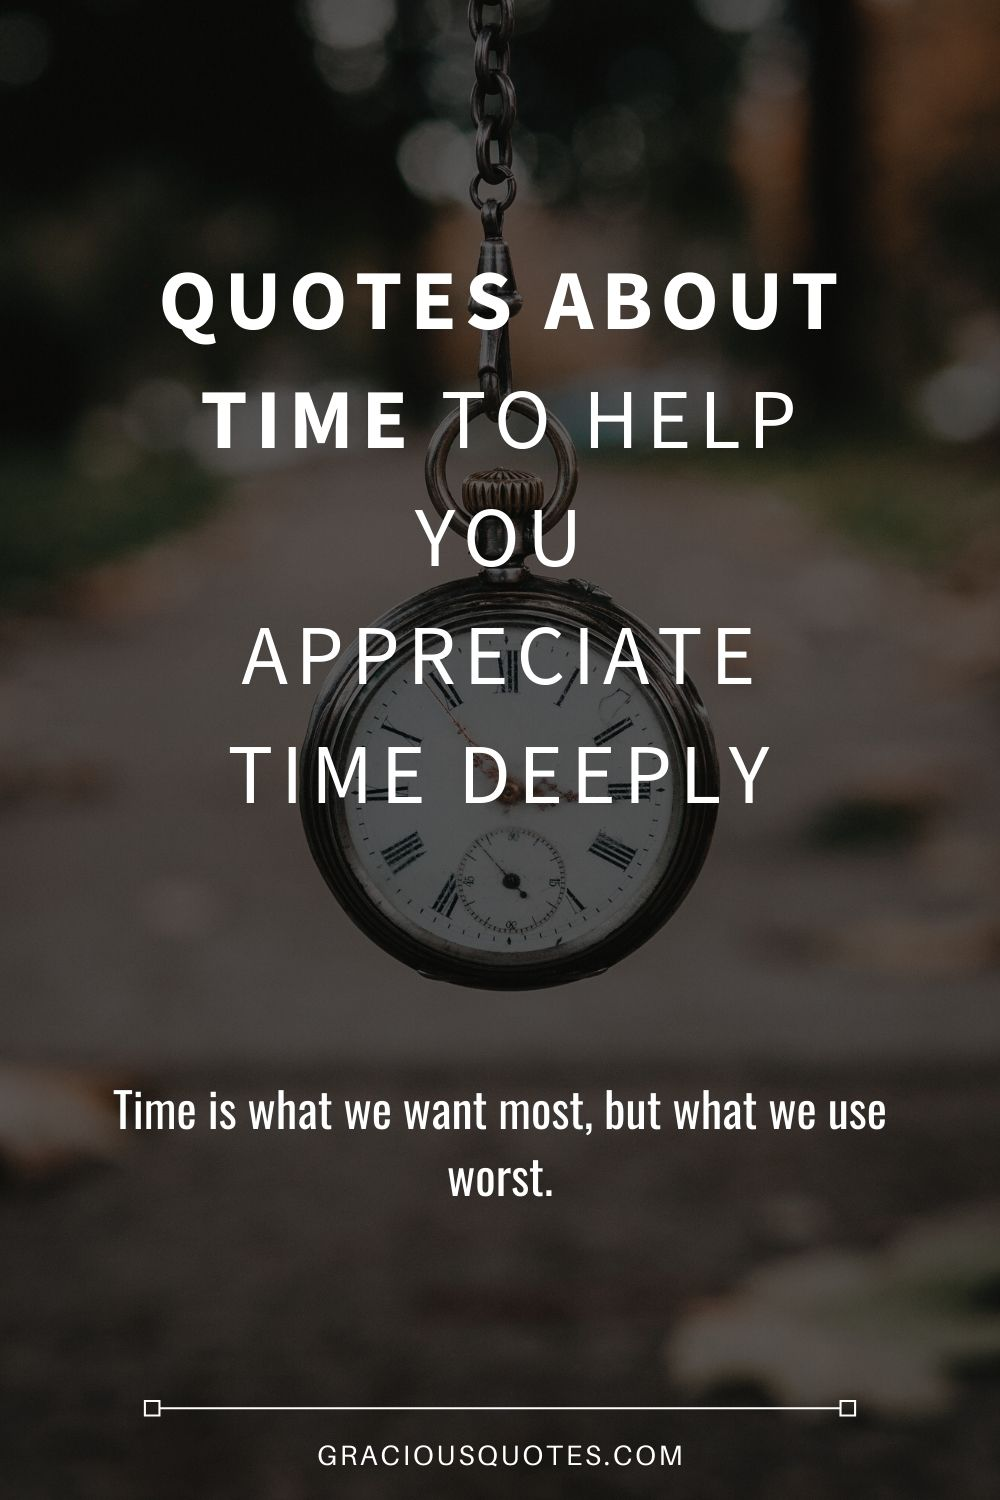 Quotes-About-Time-to-Help-You-Appreciate-Time-Deeply